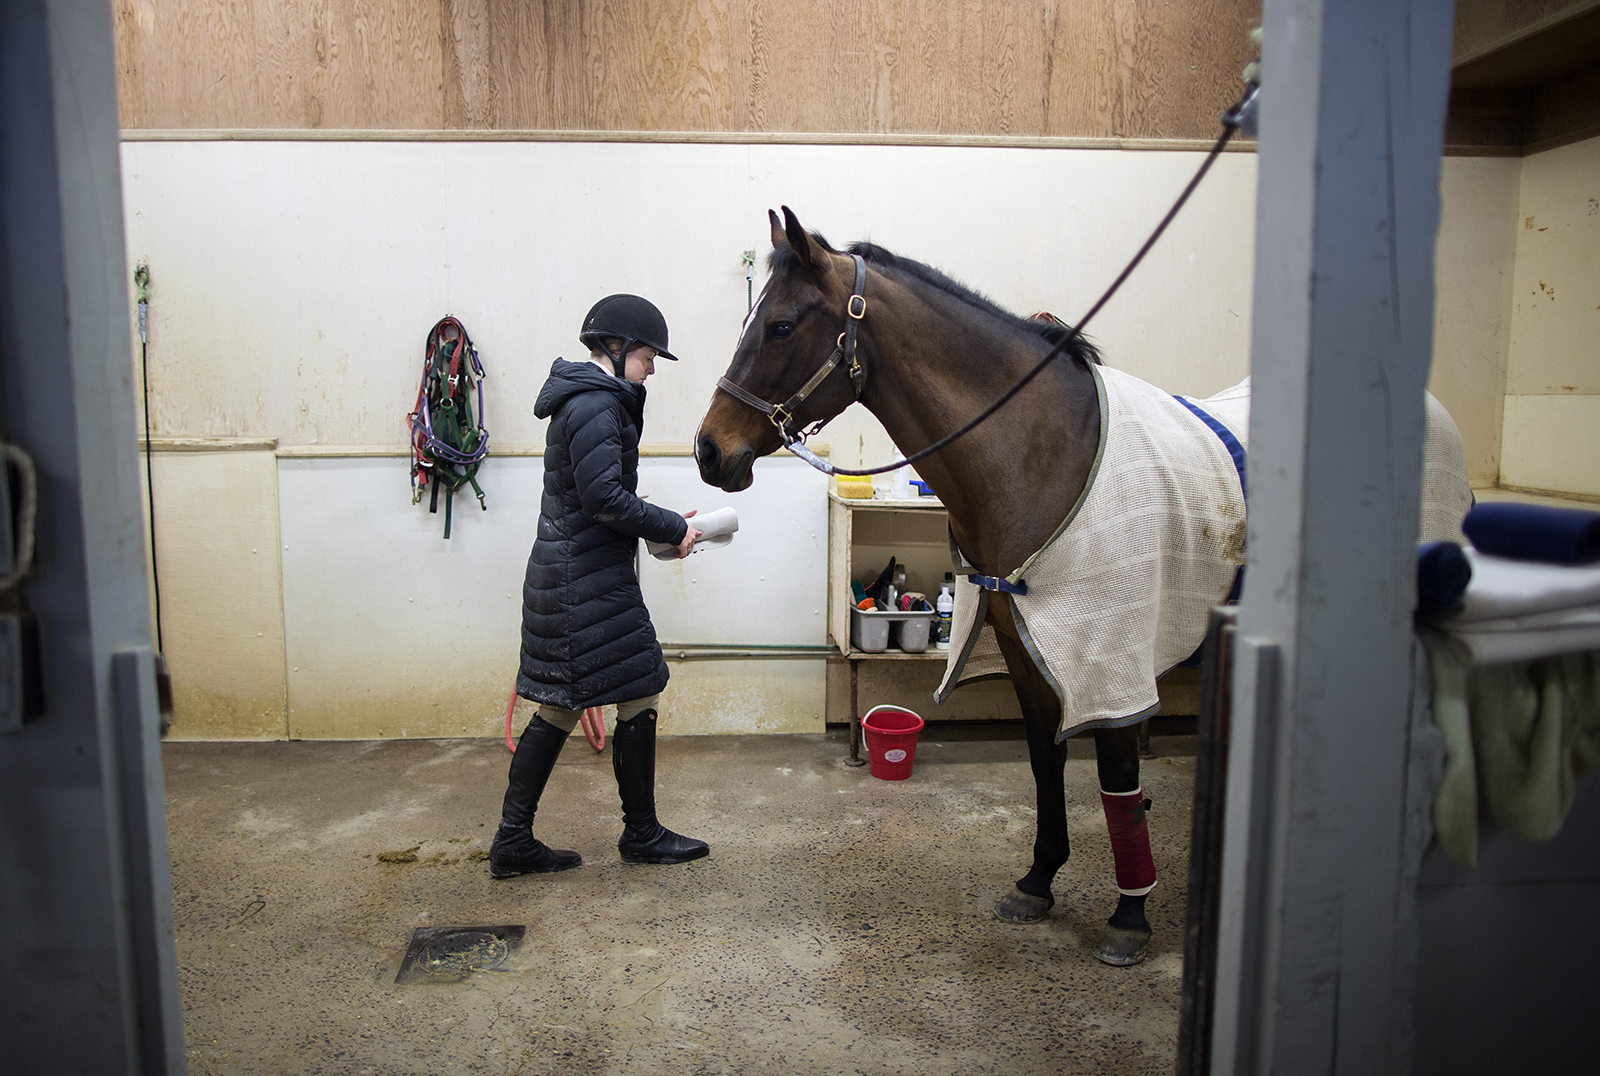 A woman in a winter jacket walks toward a blanketed horse in a barn aisle